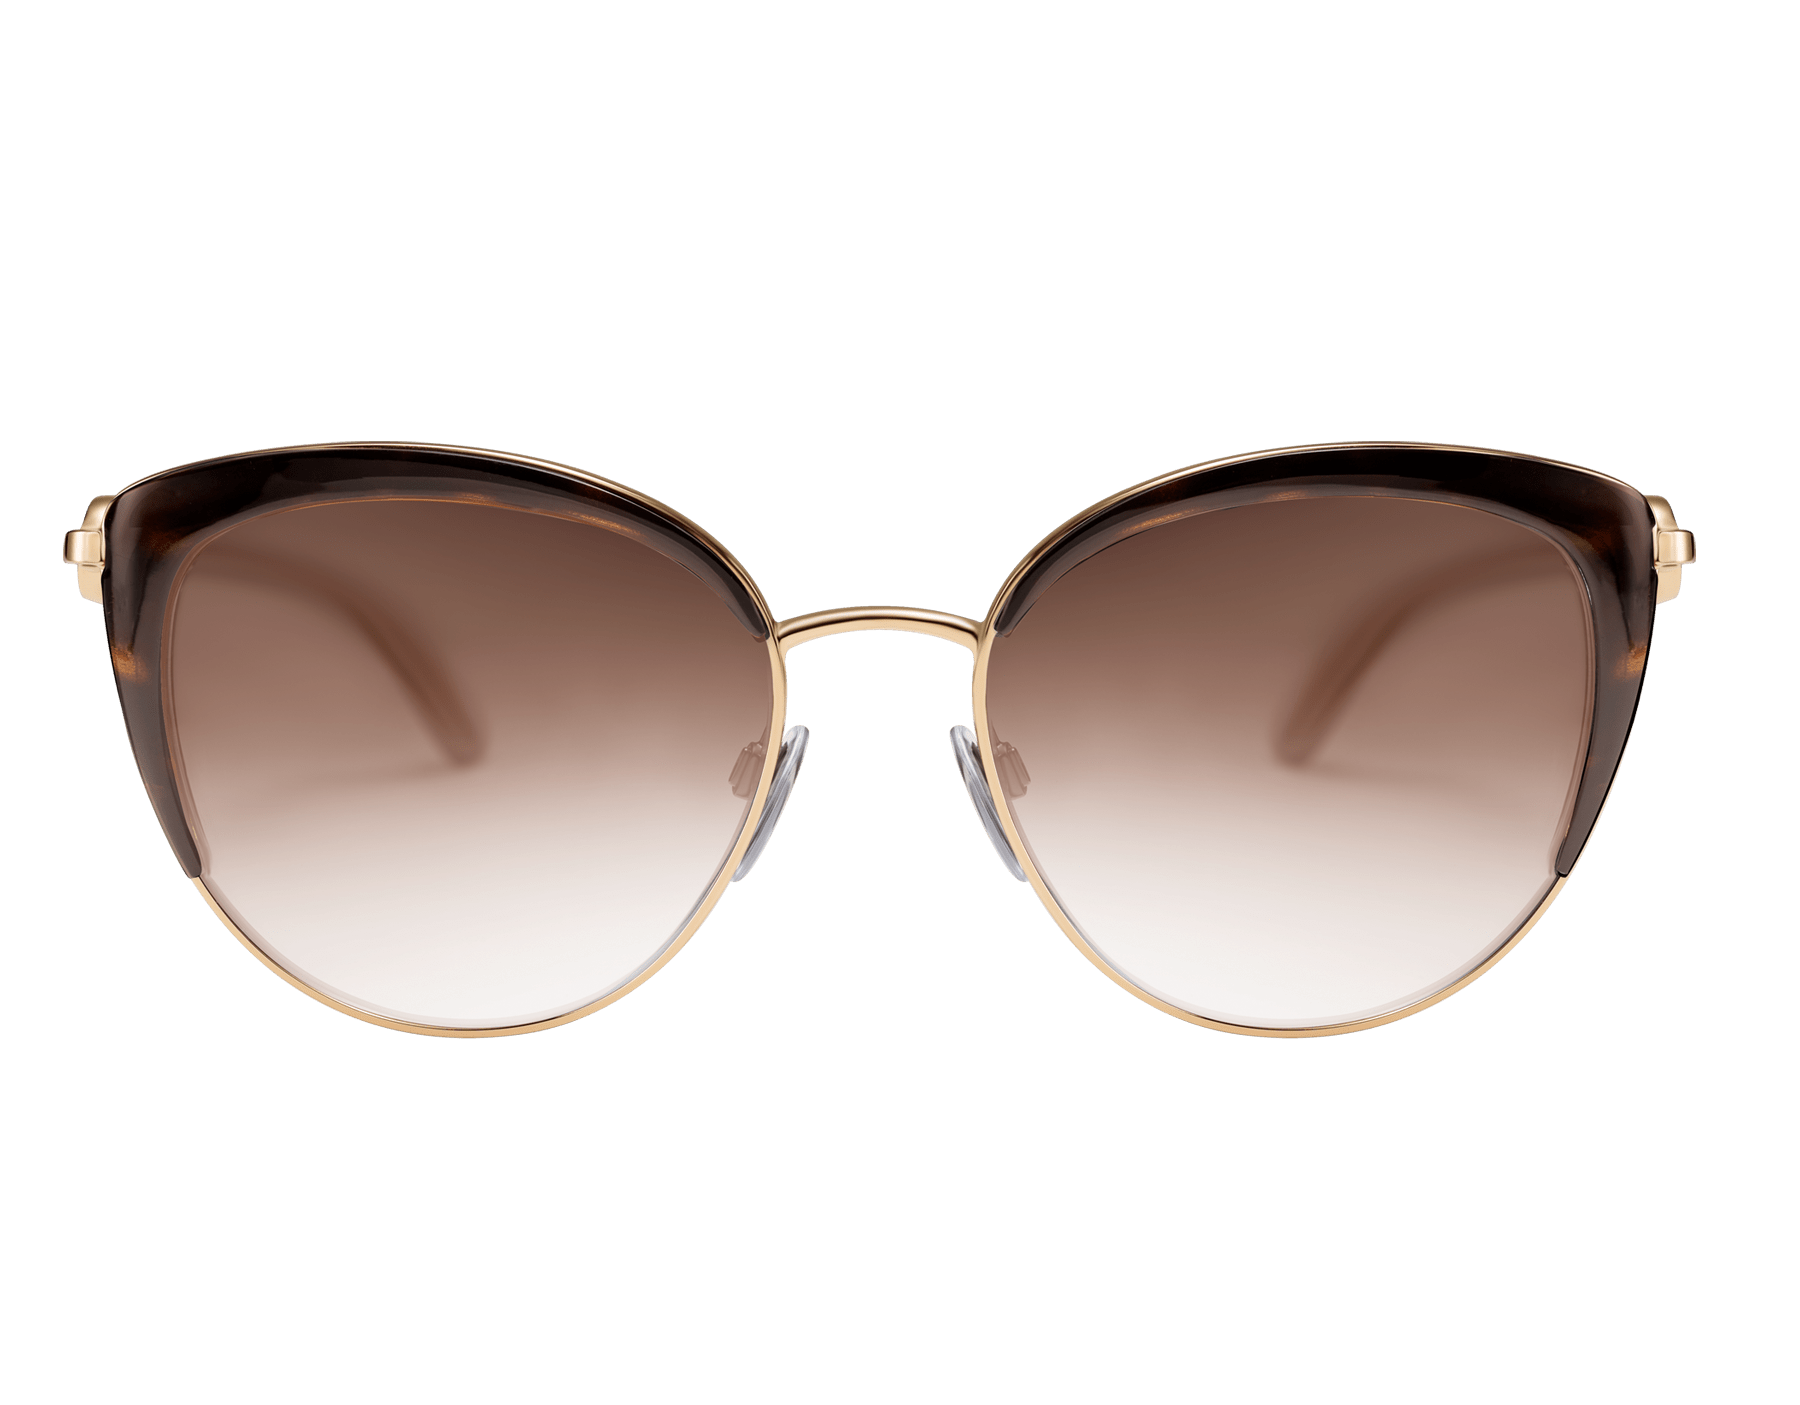 BVLGARI BVLGARI soft cat-eye metal sunglasses featuring a round décor with double logo. 903914 image 2